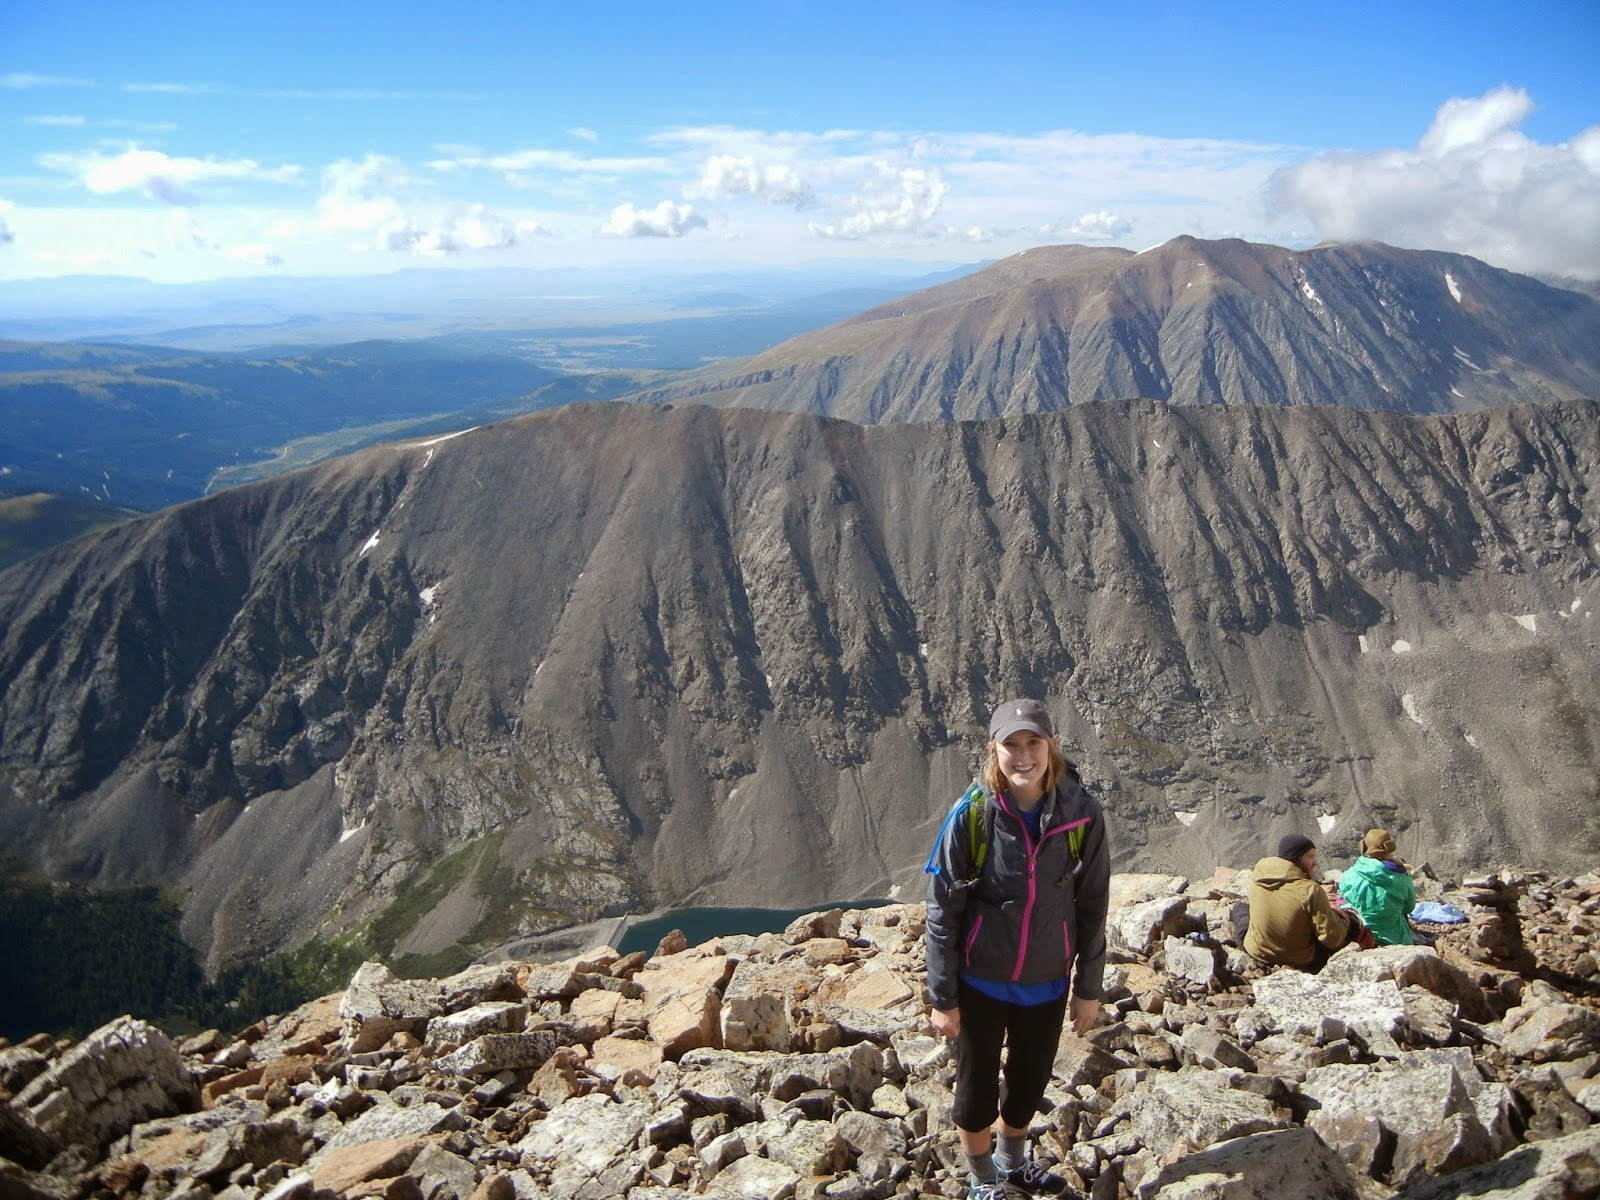 hike quandary peak advice photos colorado 14er